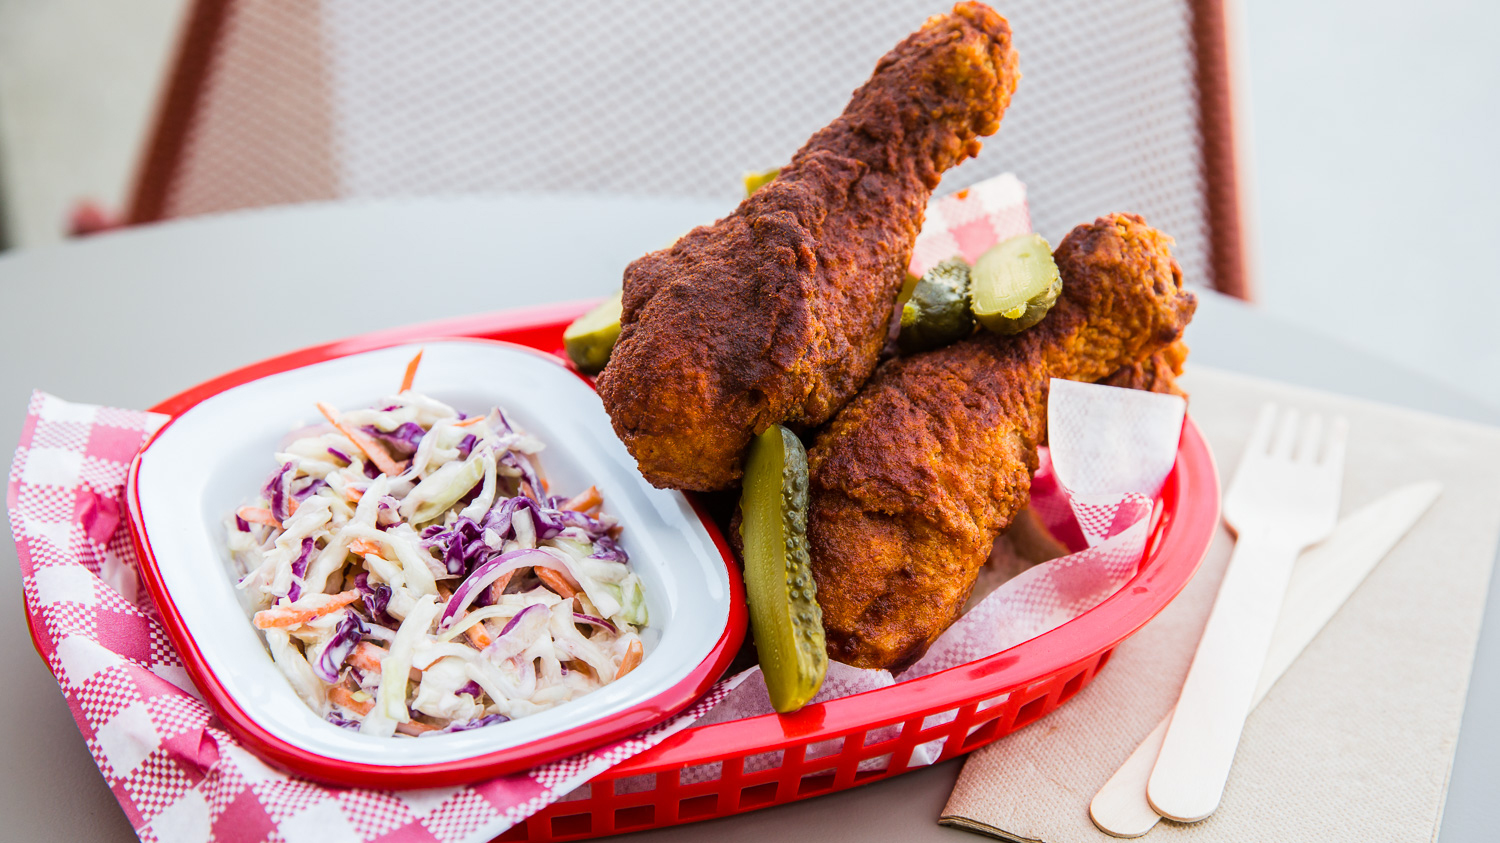 Chefs Club NY Hosts an Epic Fried Chicken Dinner